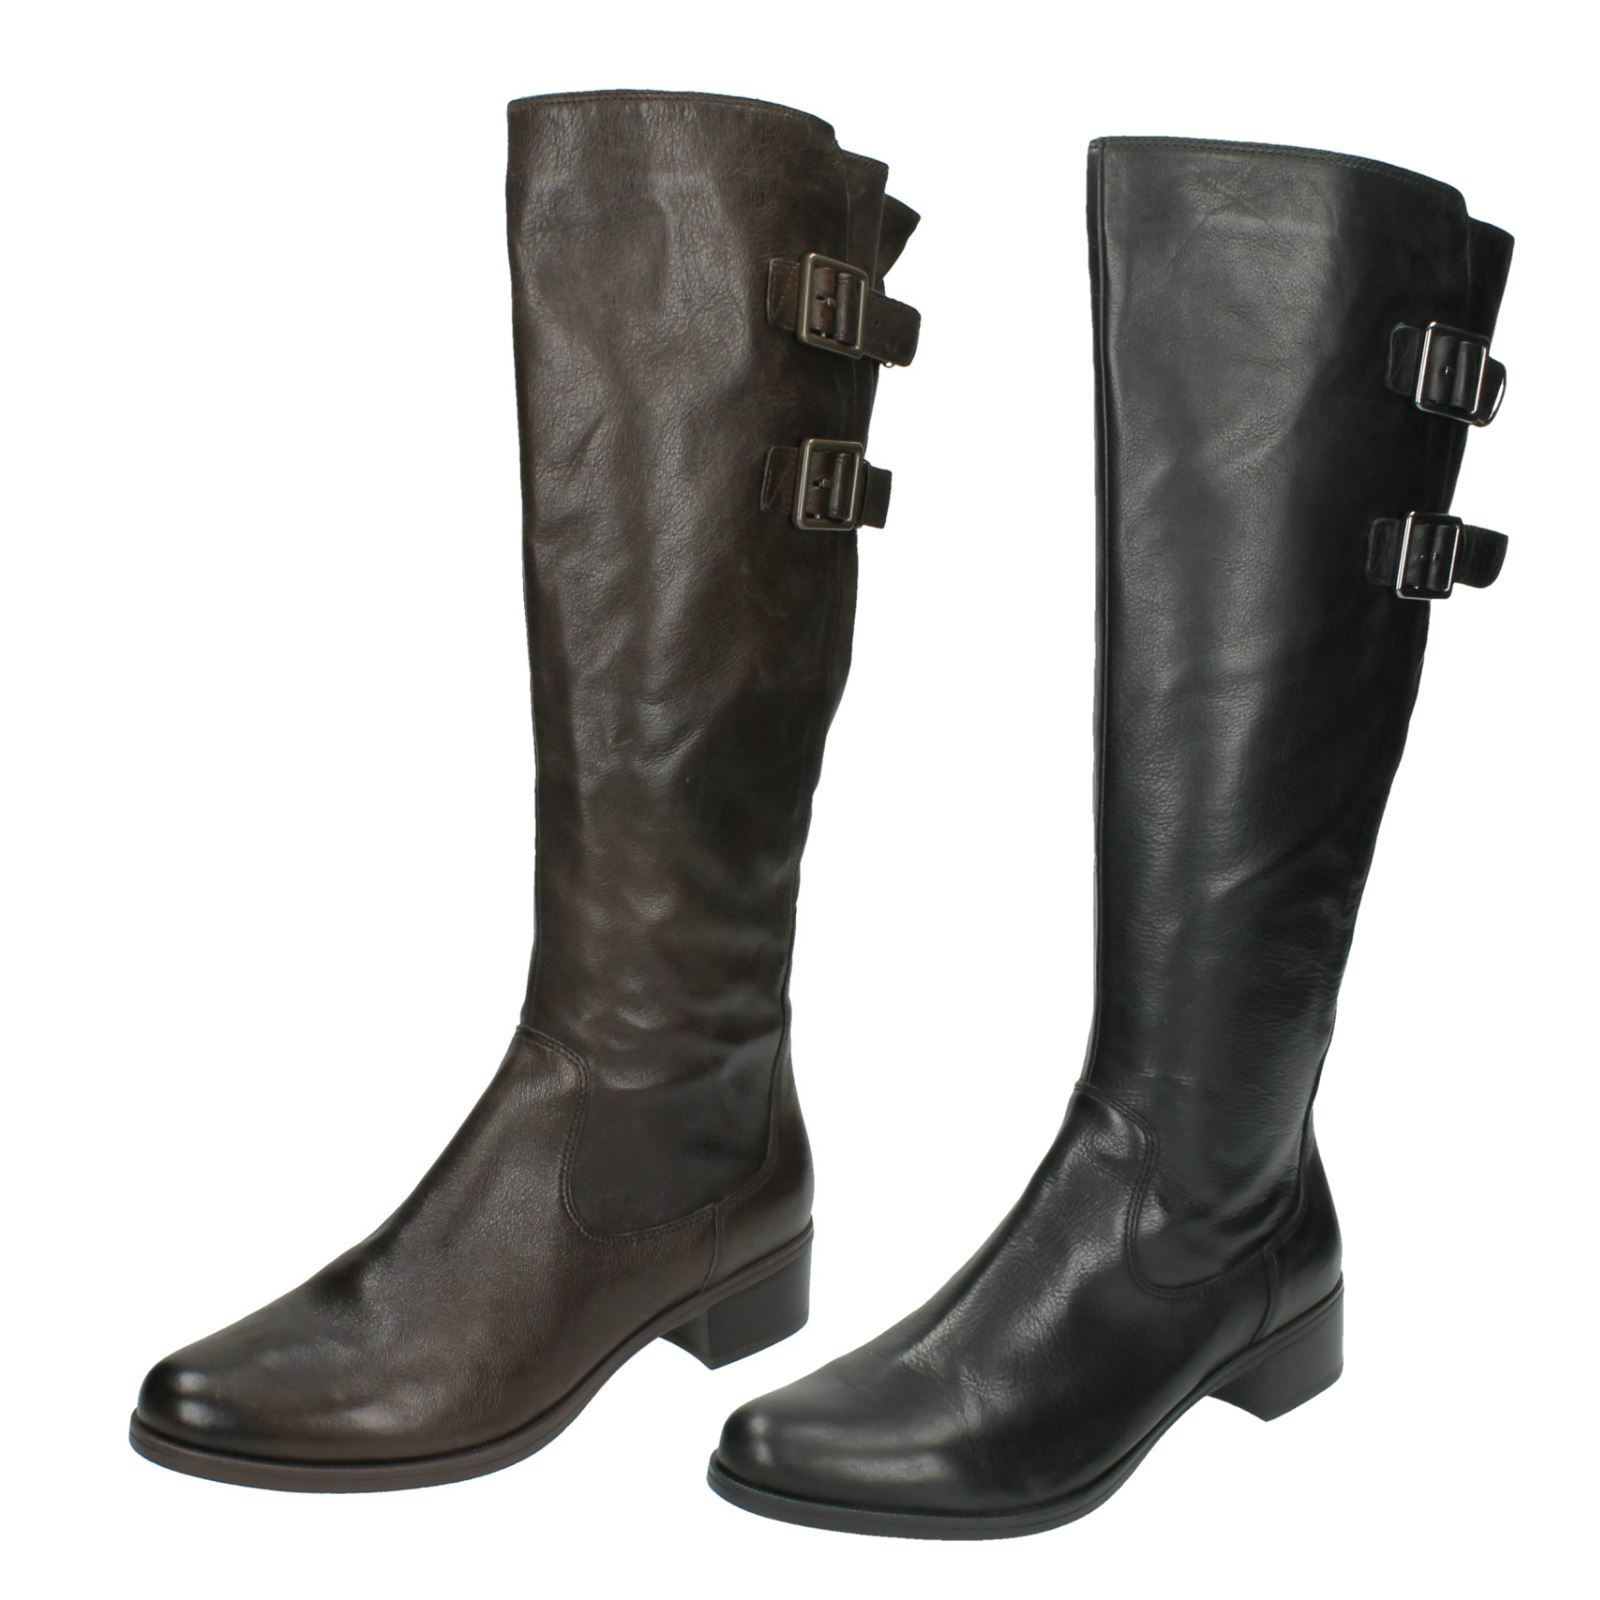 Ladies Clarks Knee High Boots